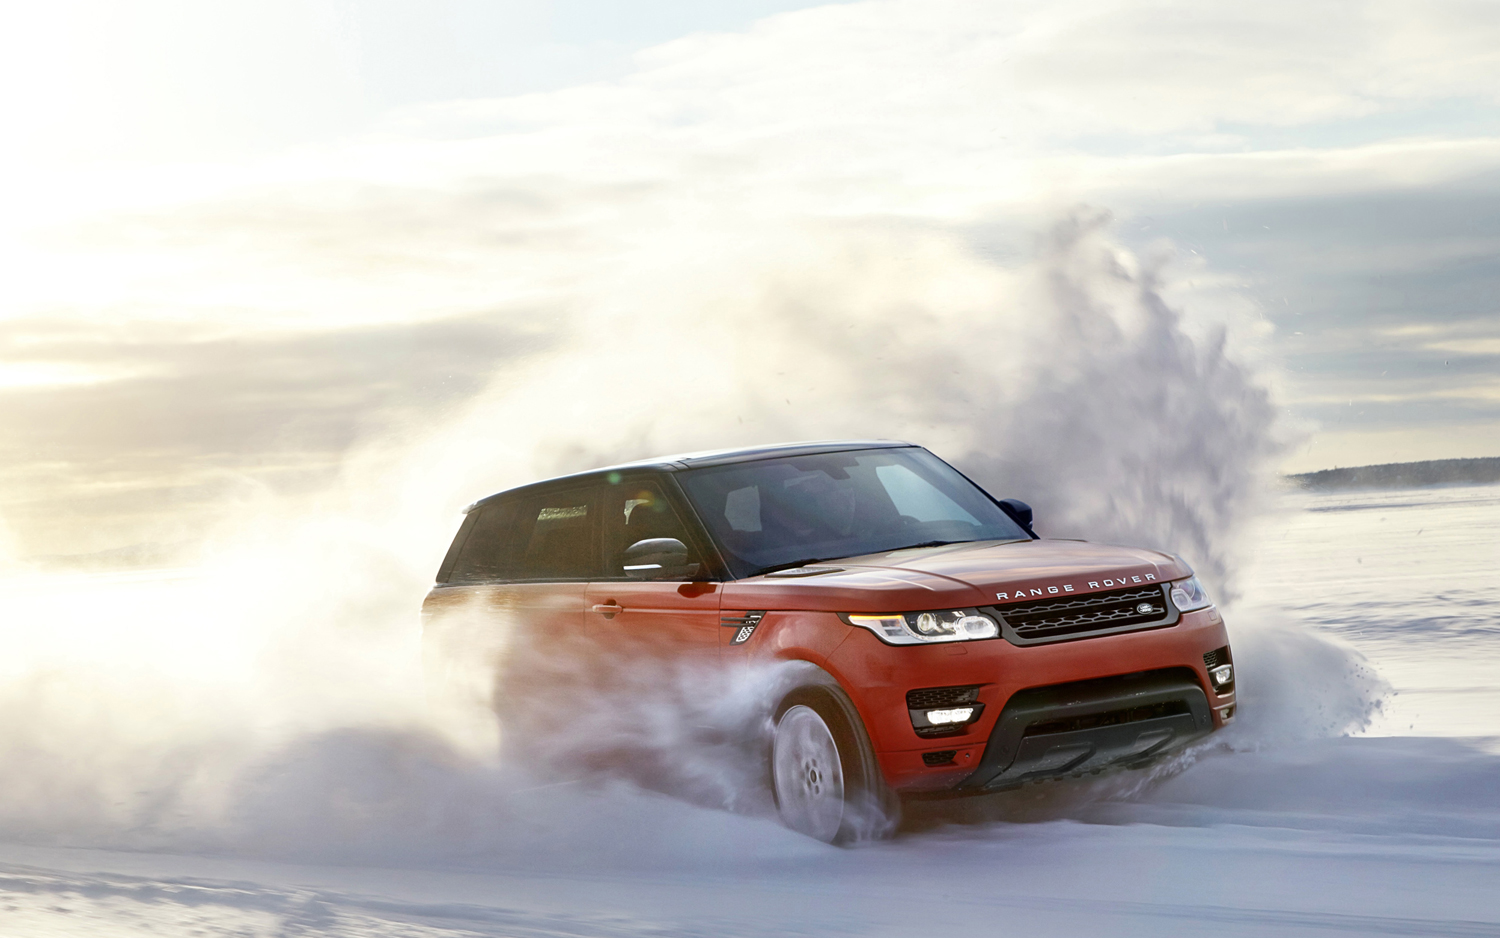 2014-Range-Rover-Sport-front-view-in-motion-07